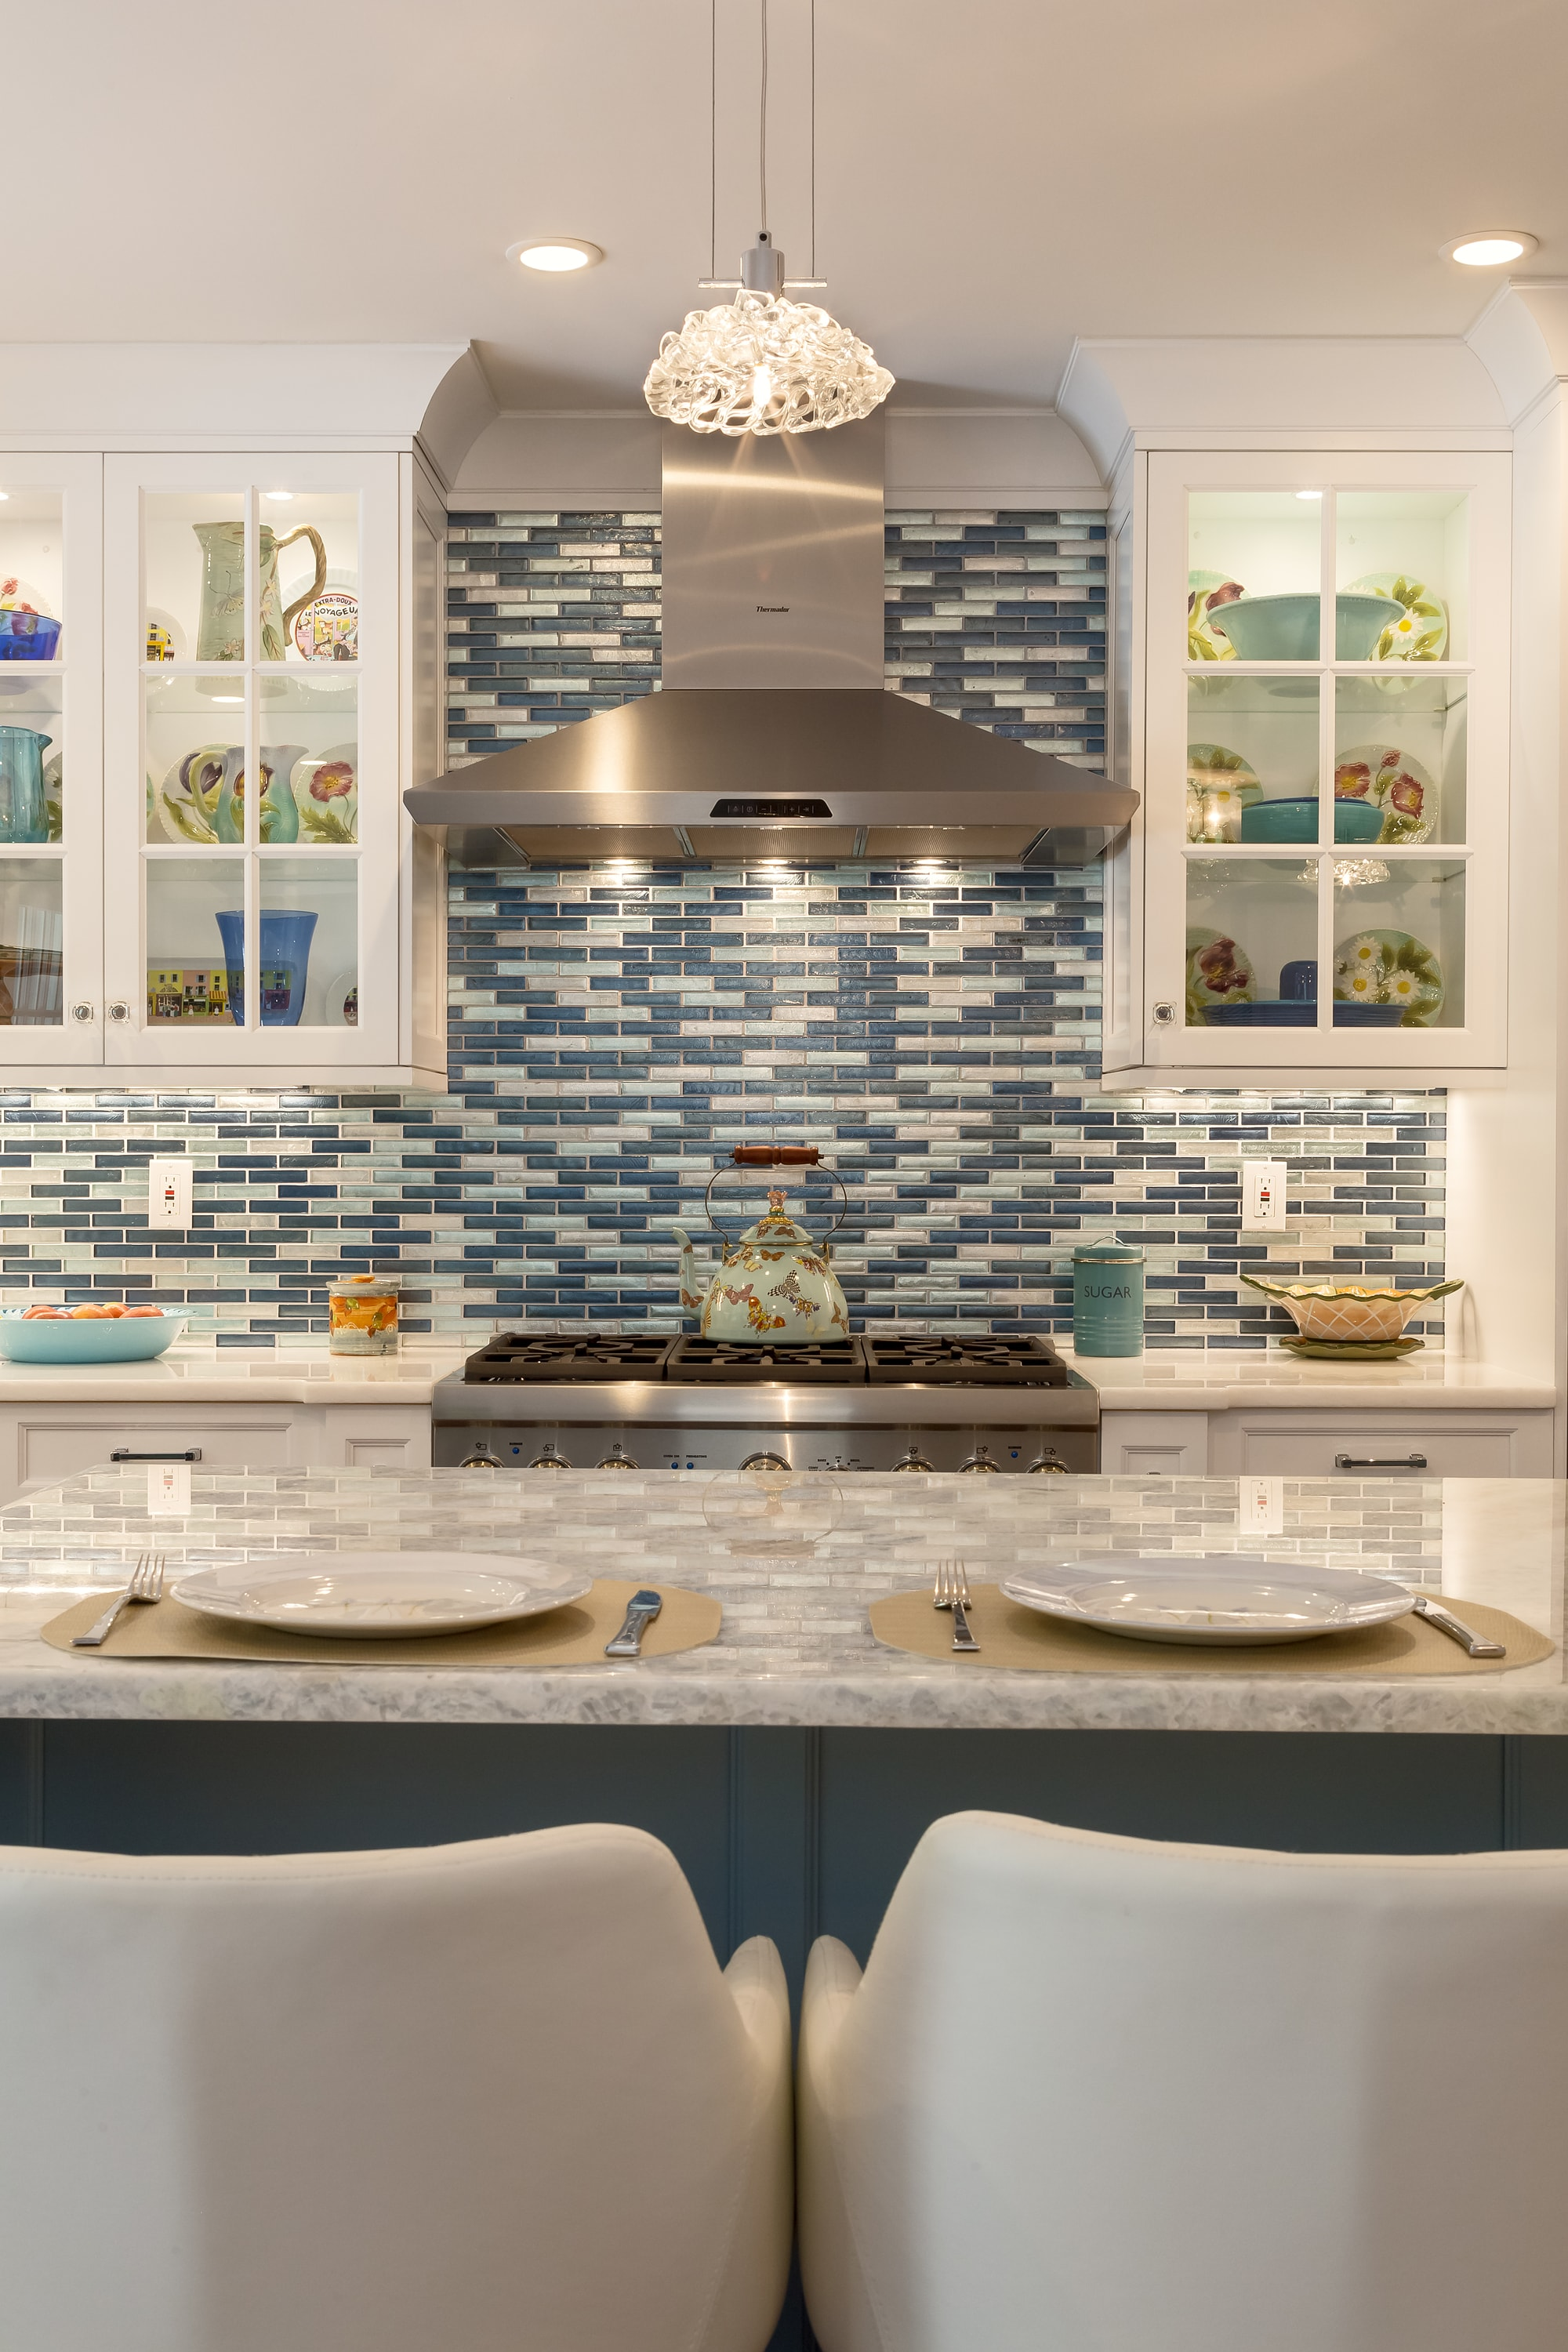 Transitional style kitchen with tiled backsplash